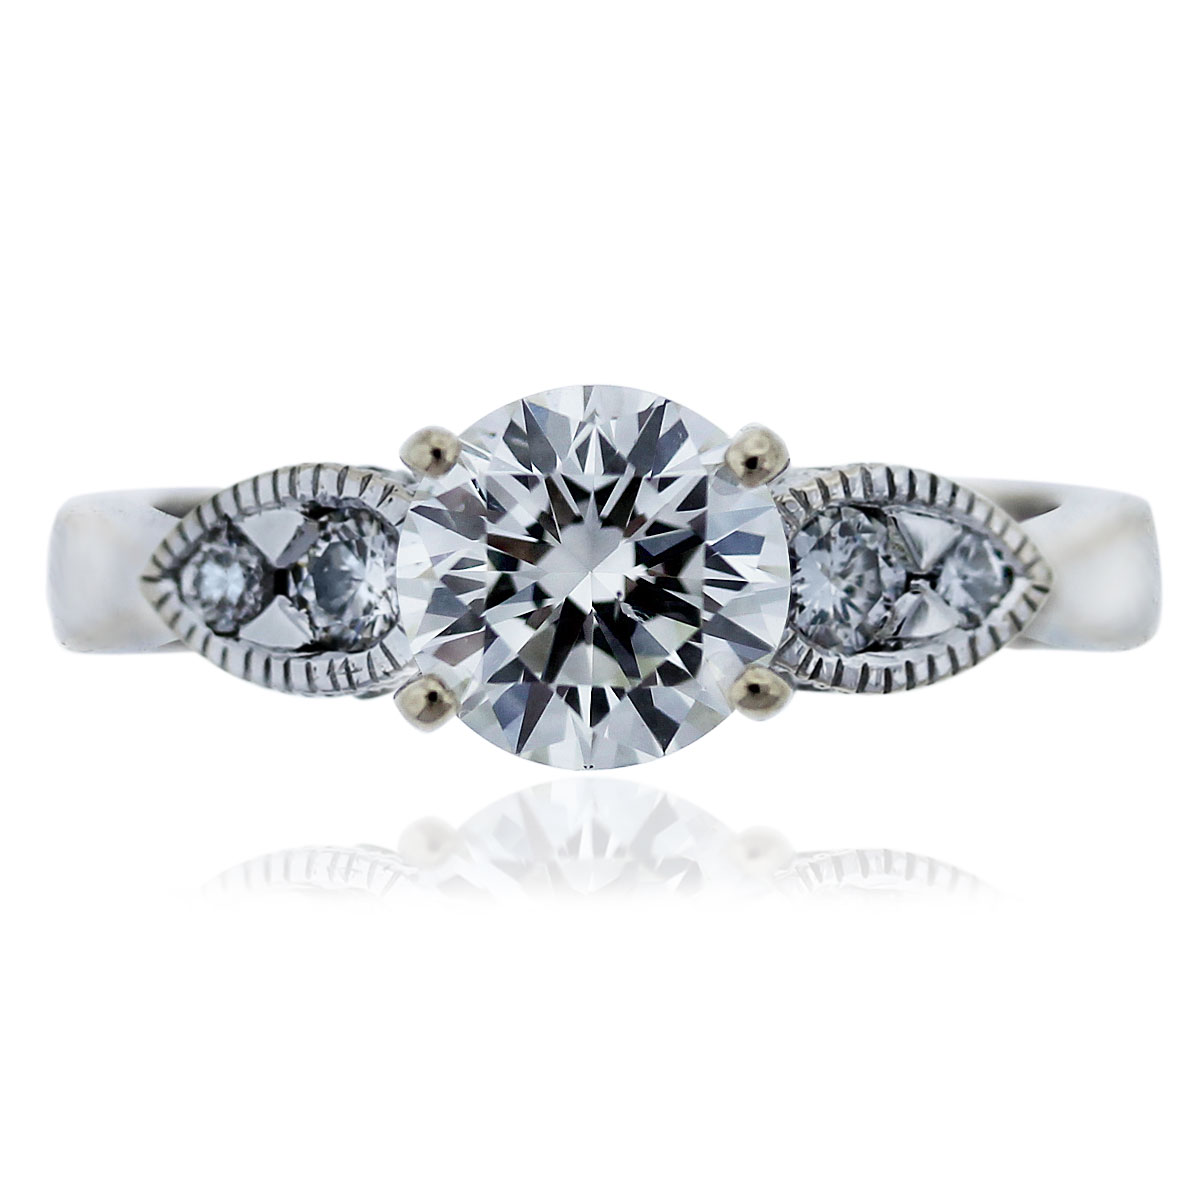 18k White Gold GIA Certified 1.66ctw Round Brilliant Diamond Engagement Ring